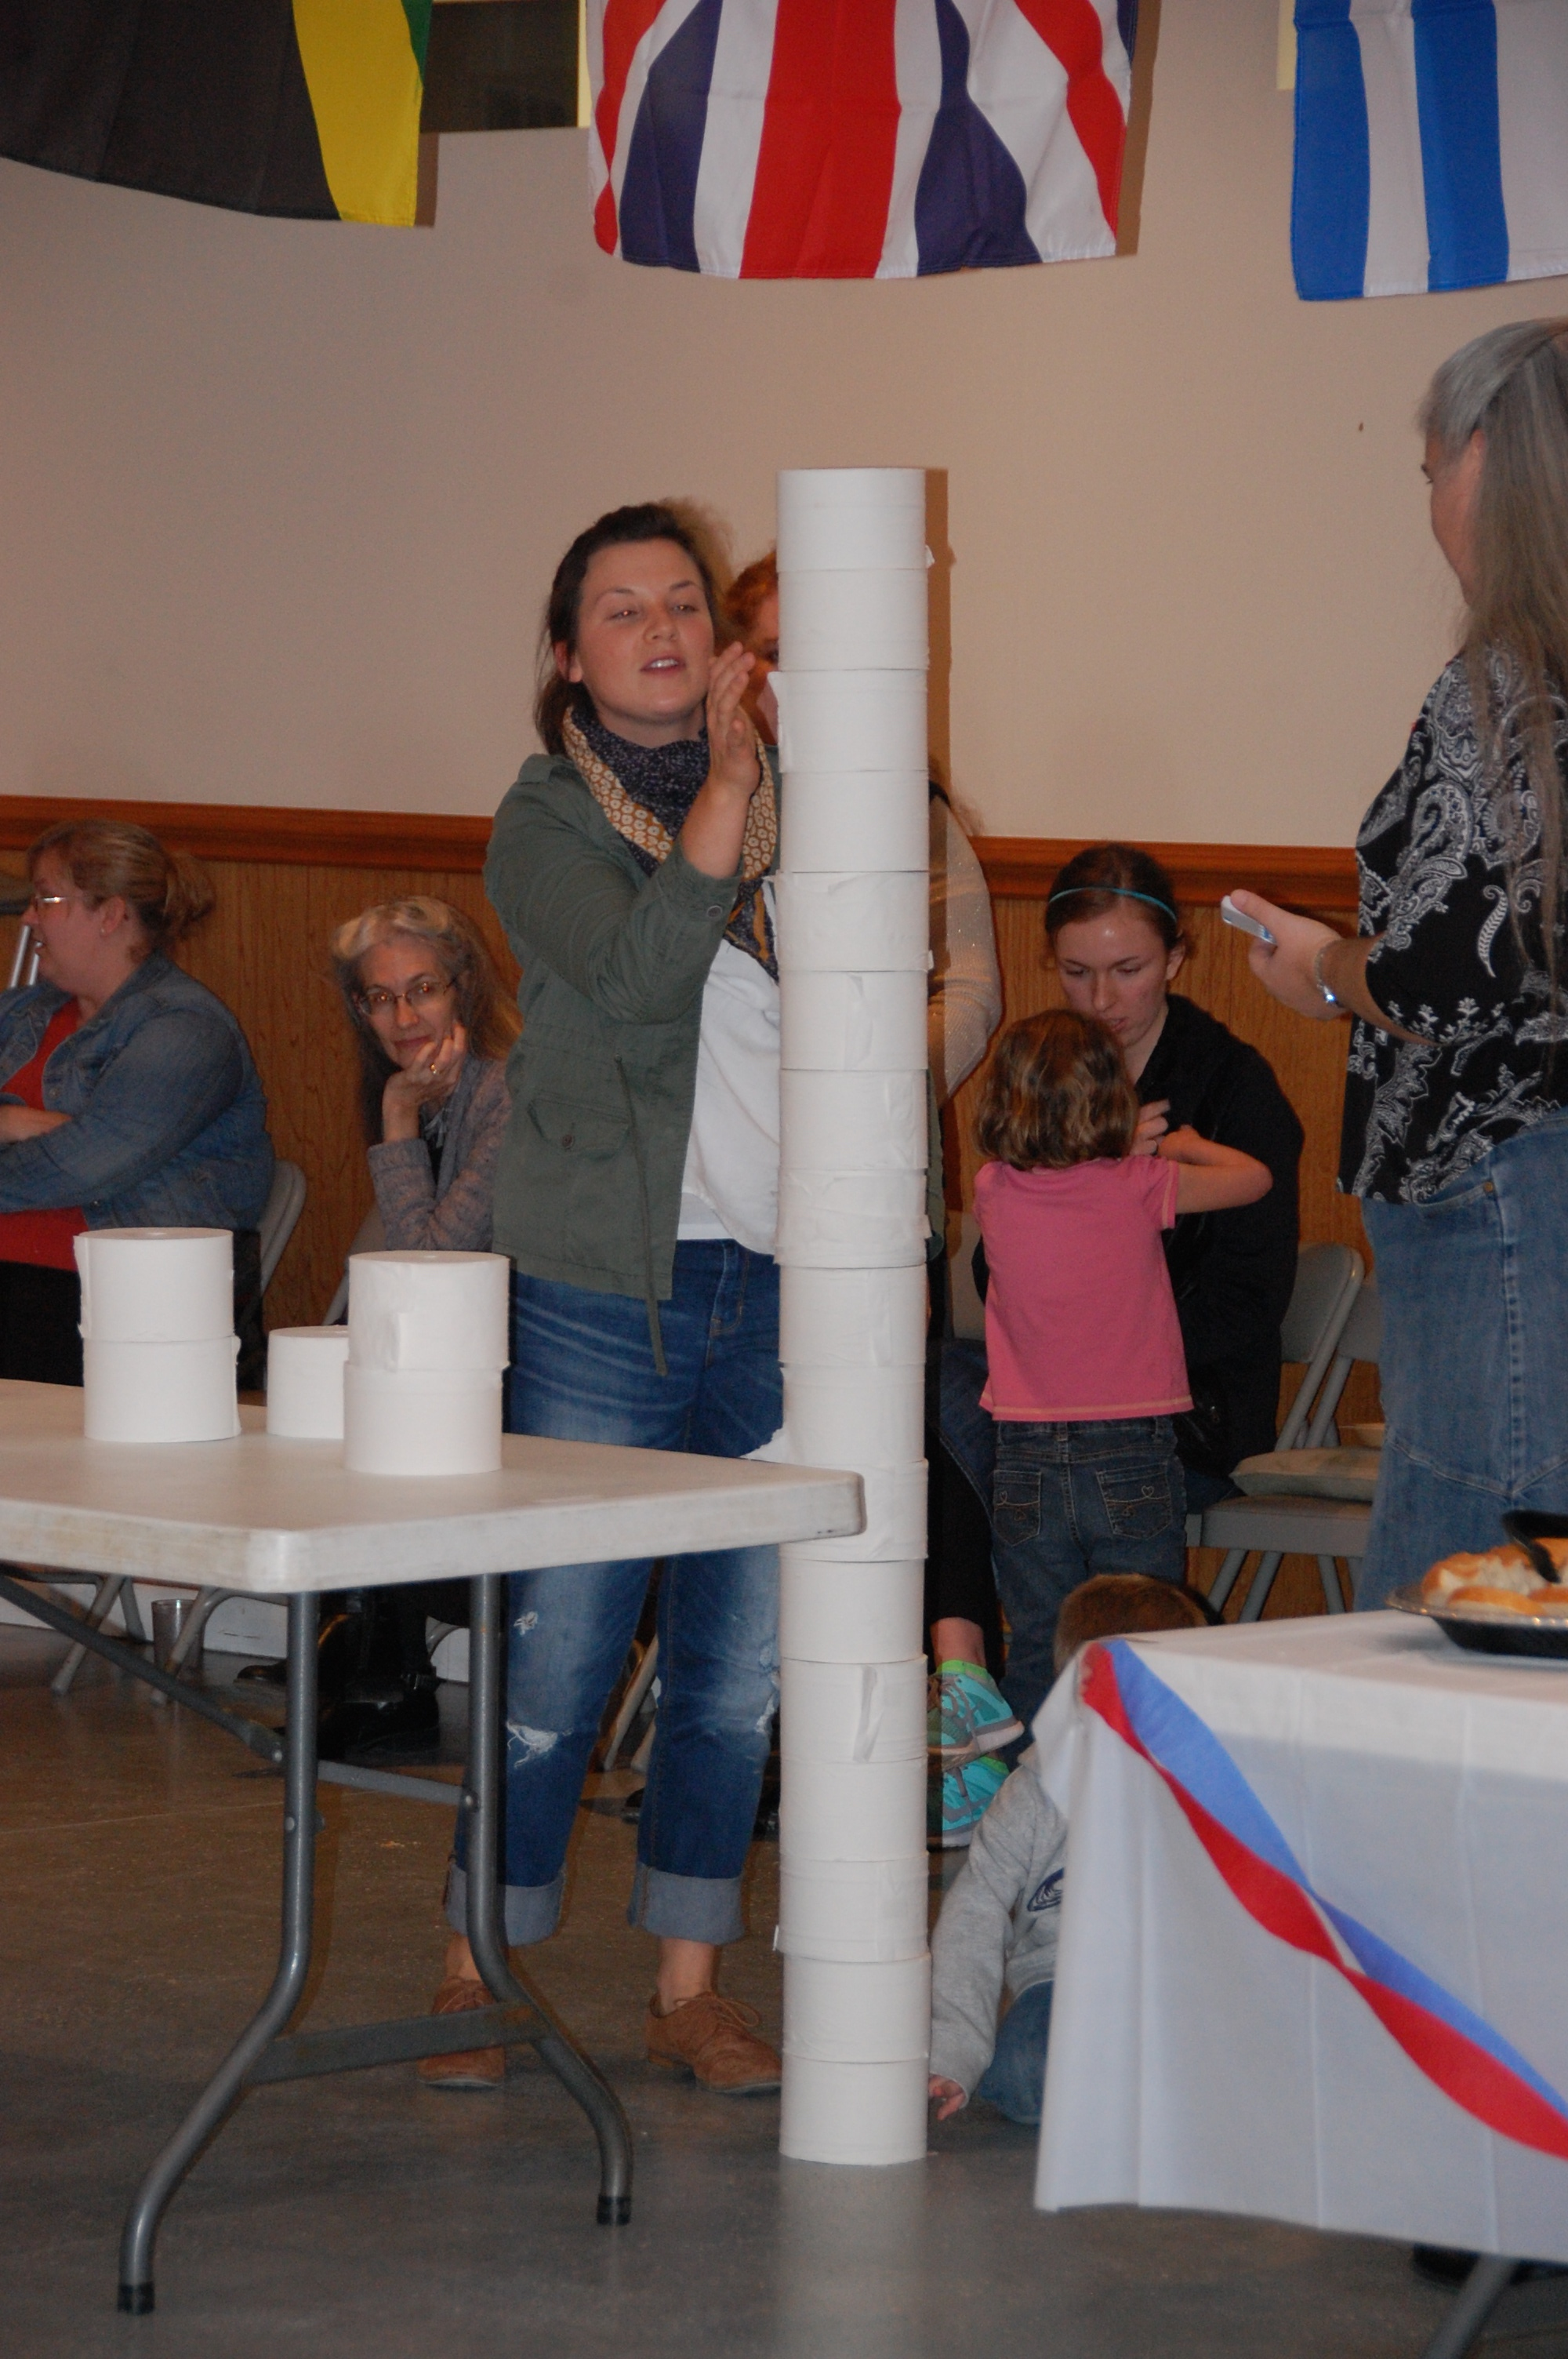 How high can you stack a tower of toilet paper rolls within a time limit?